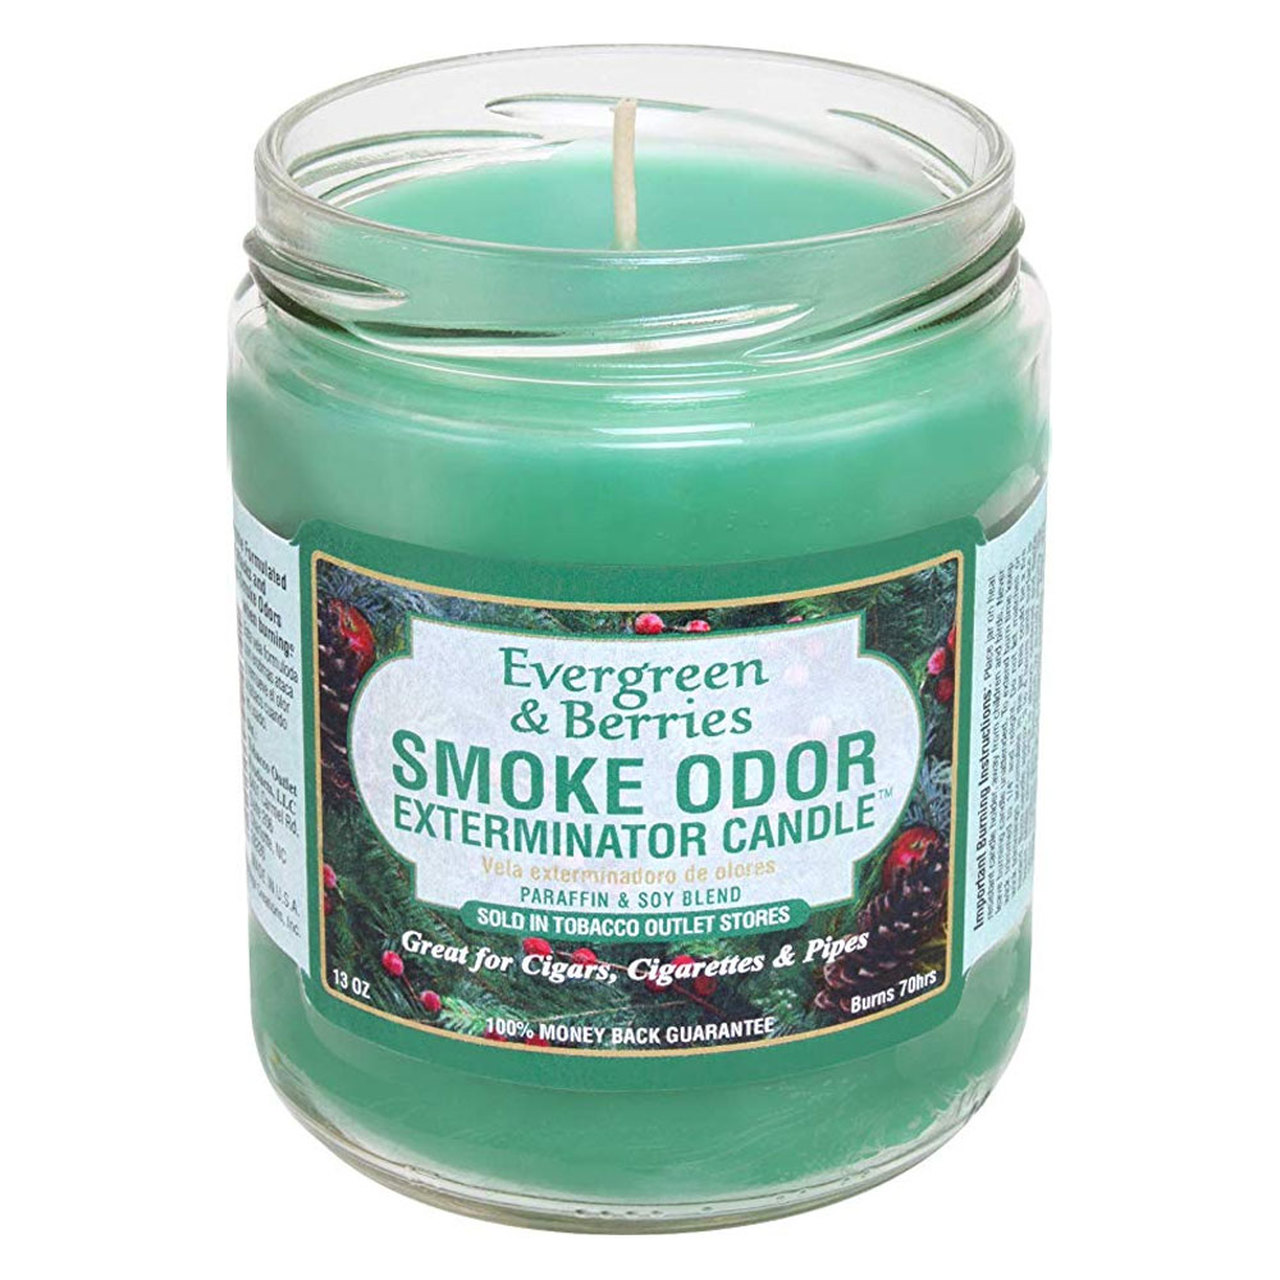 soc-evergreen-79975.1573845938.jpg